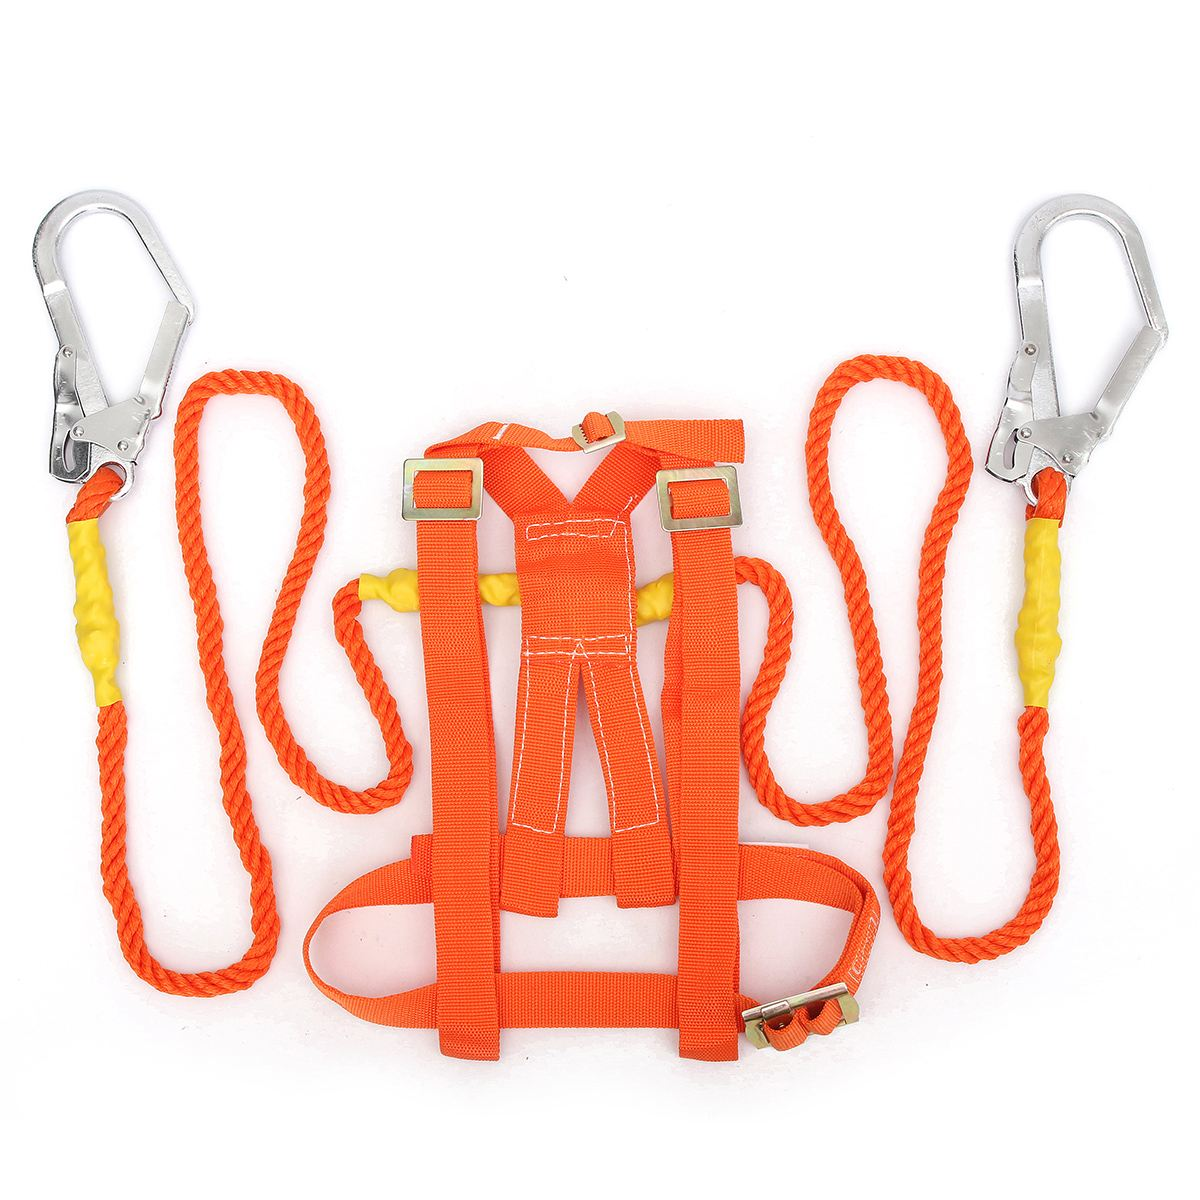 Safurance Outdoor Climbing Climb Mountain Rope Safety Waist Belt Protection Equipment Workplace Safety Harness